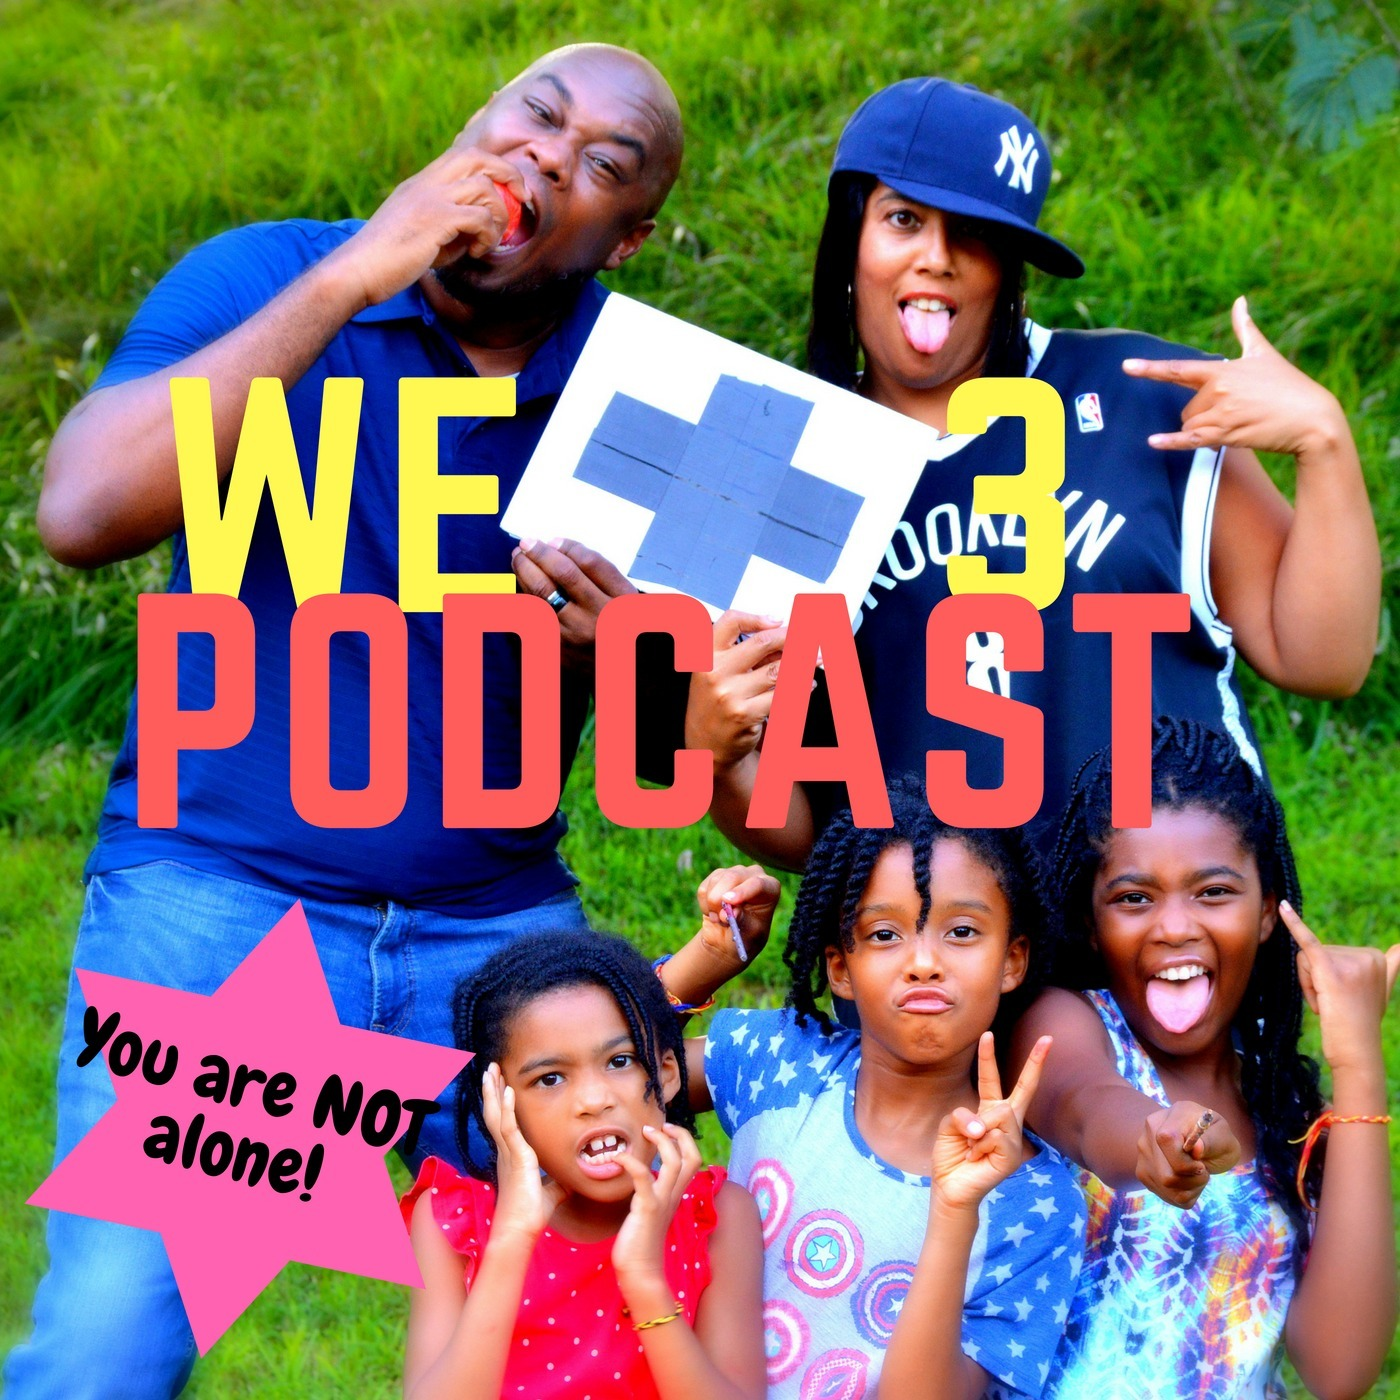 The WE+3 Podcast